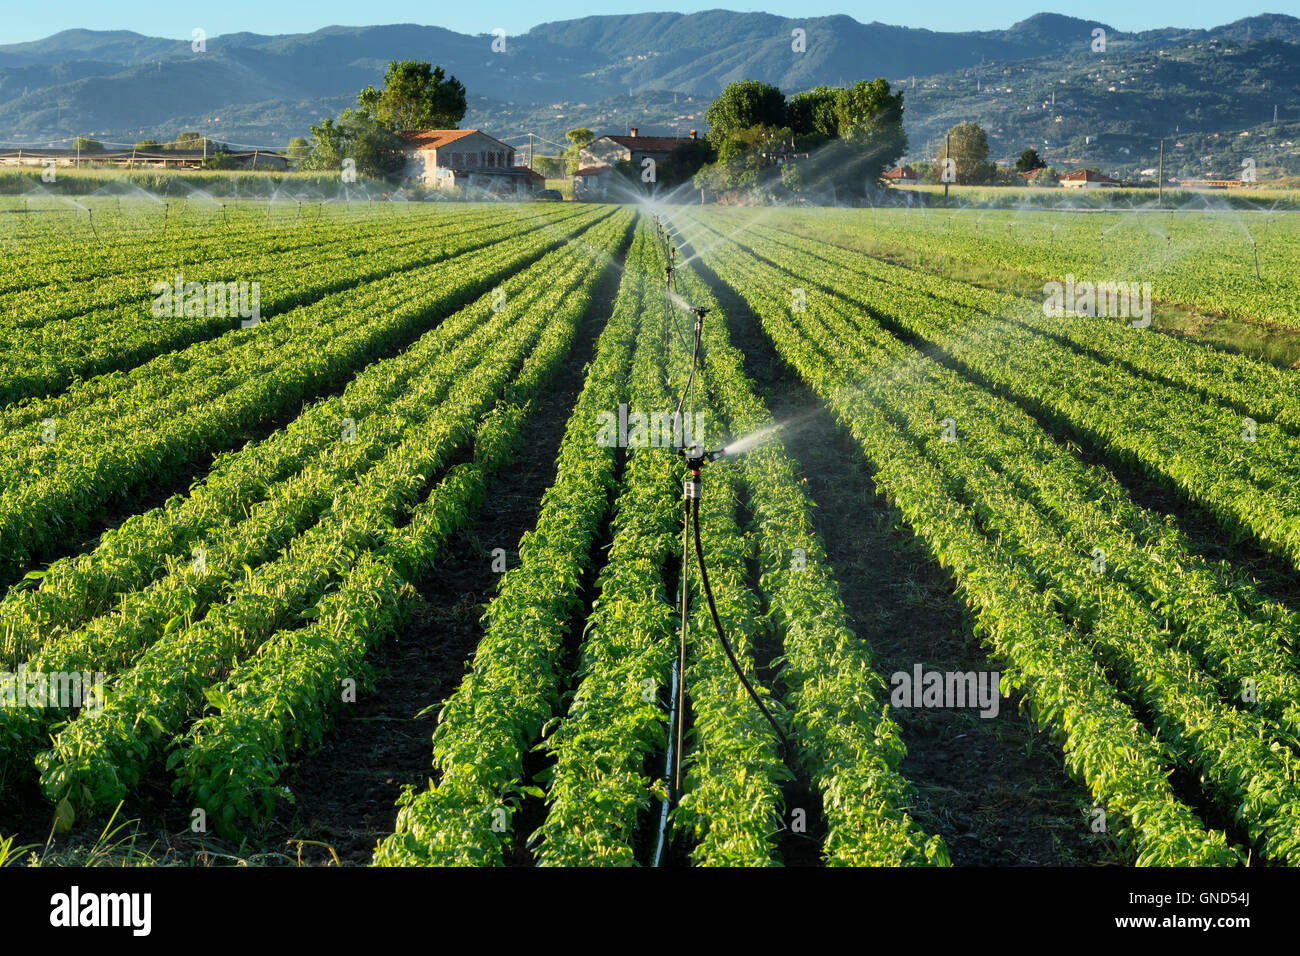 irrigation system on a basil field - Stock Image